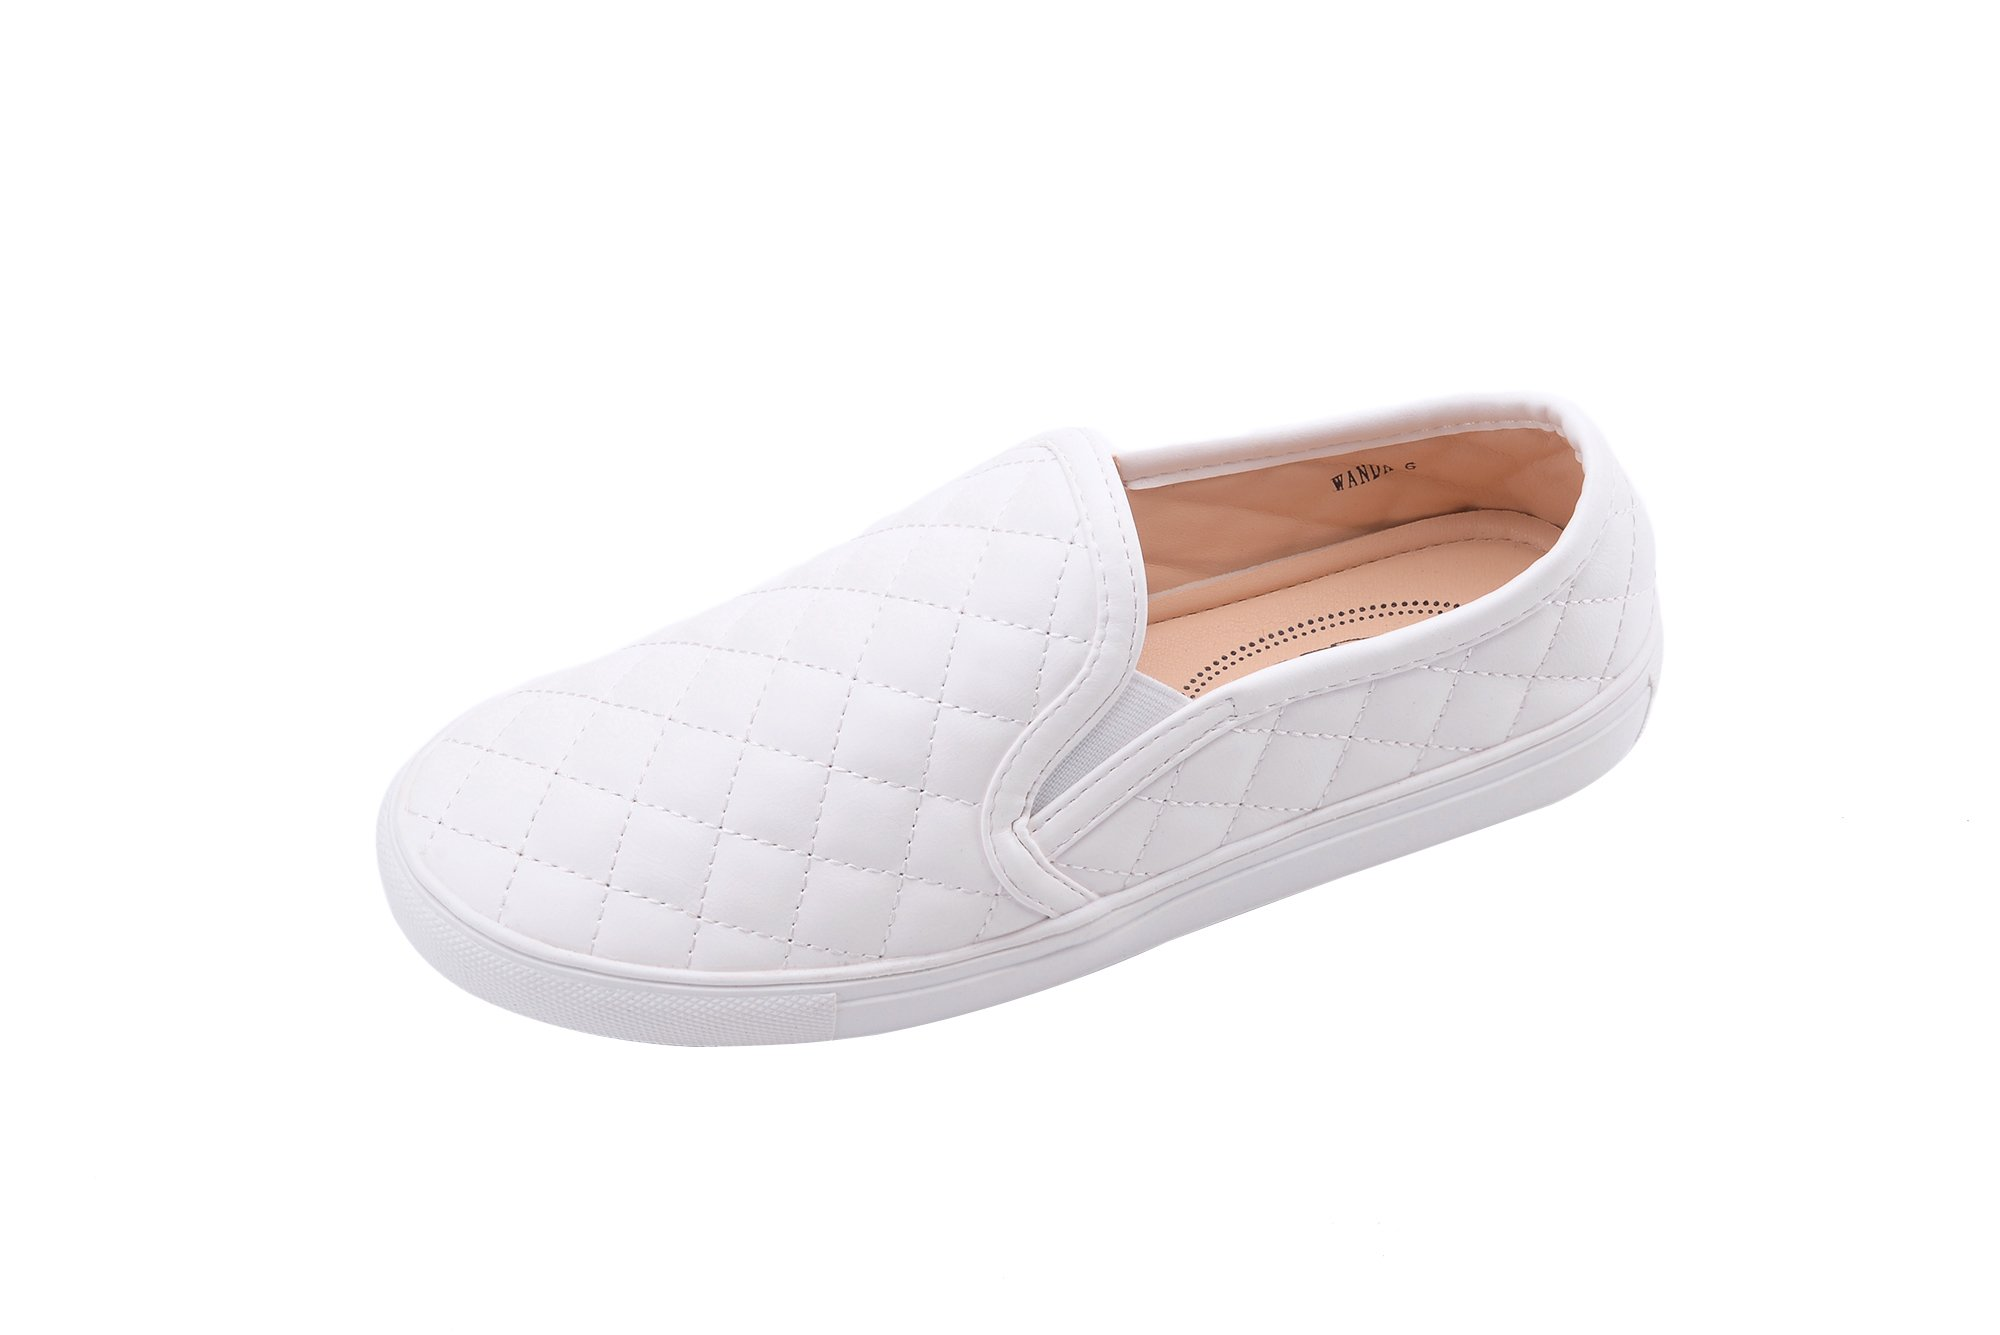 GREENS Wanta Women Canvas Fierce Quilt Pattern Slip On Fashion Sneakers, White 10 by GREENS (Image #1)